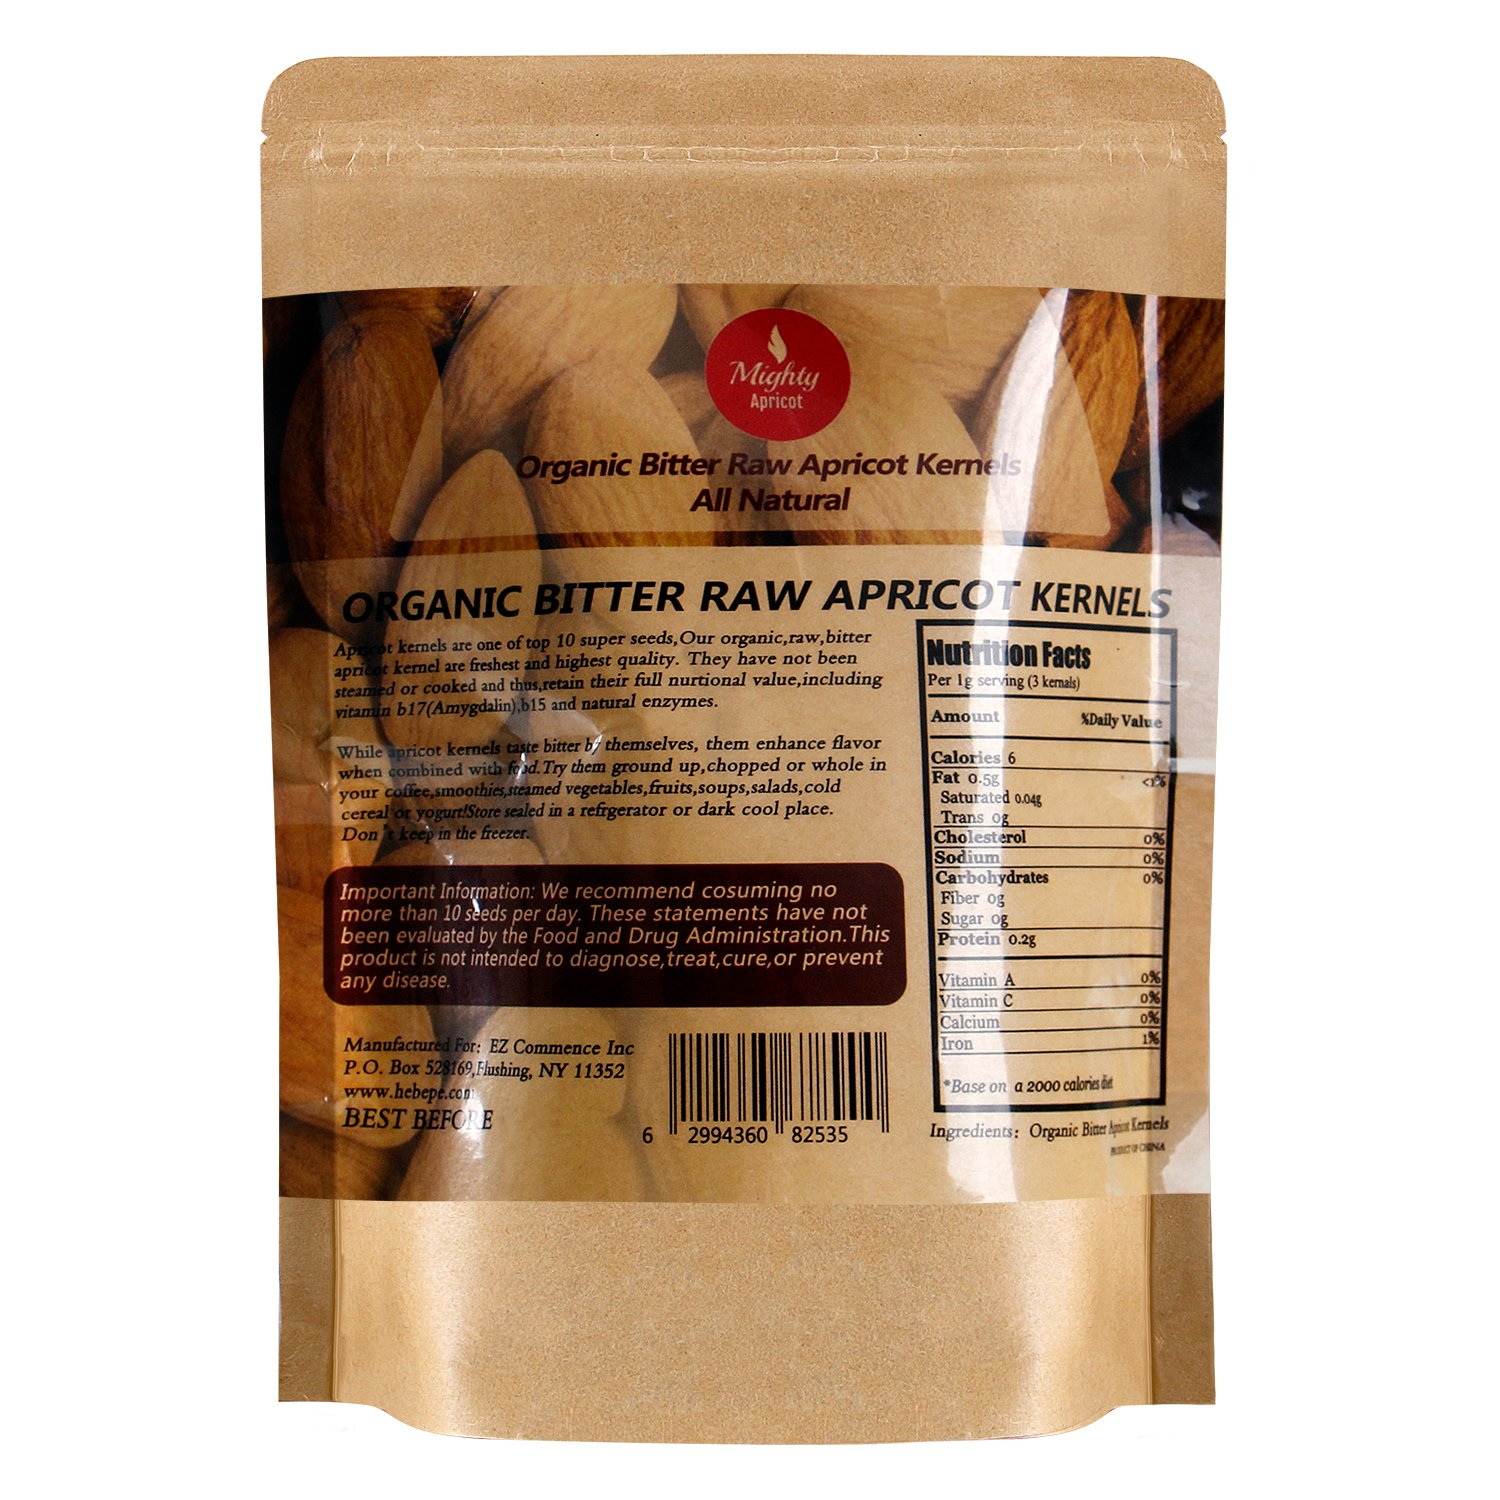 Mighty Apricot Bitter Apricot Kernels(1LB) 16oz by Mighty Apricot